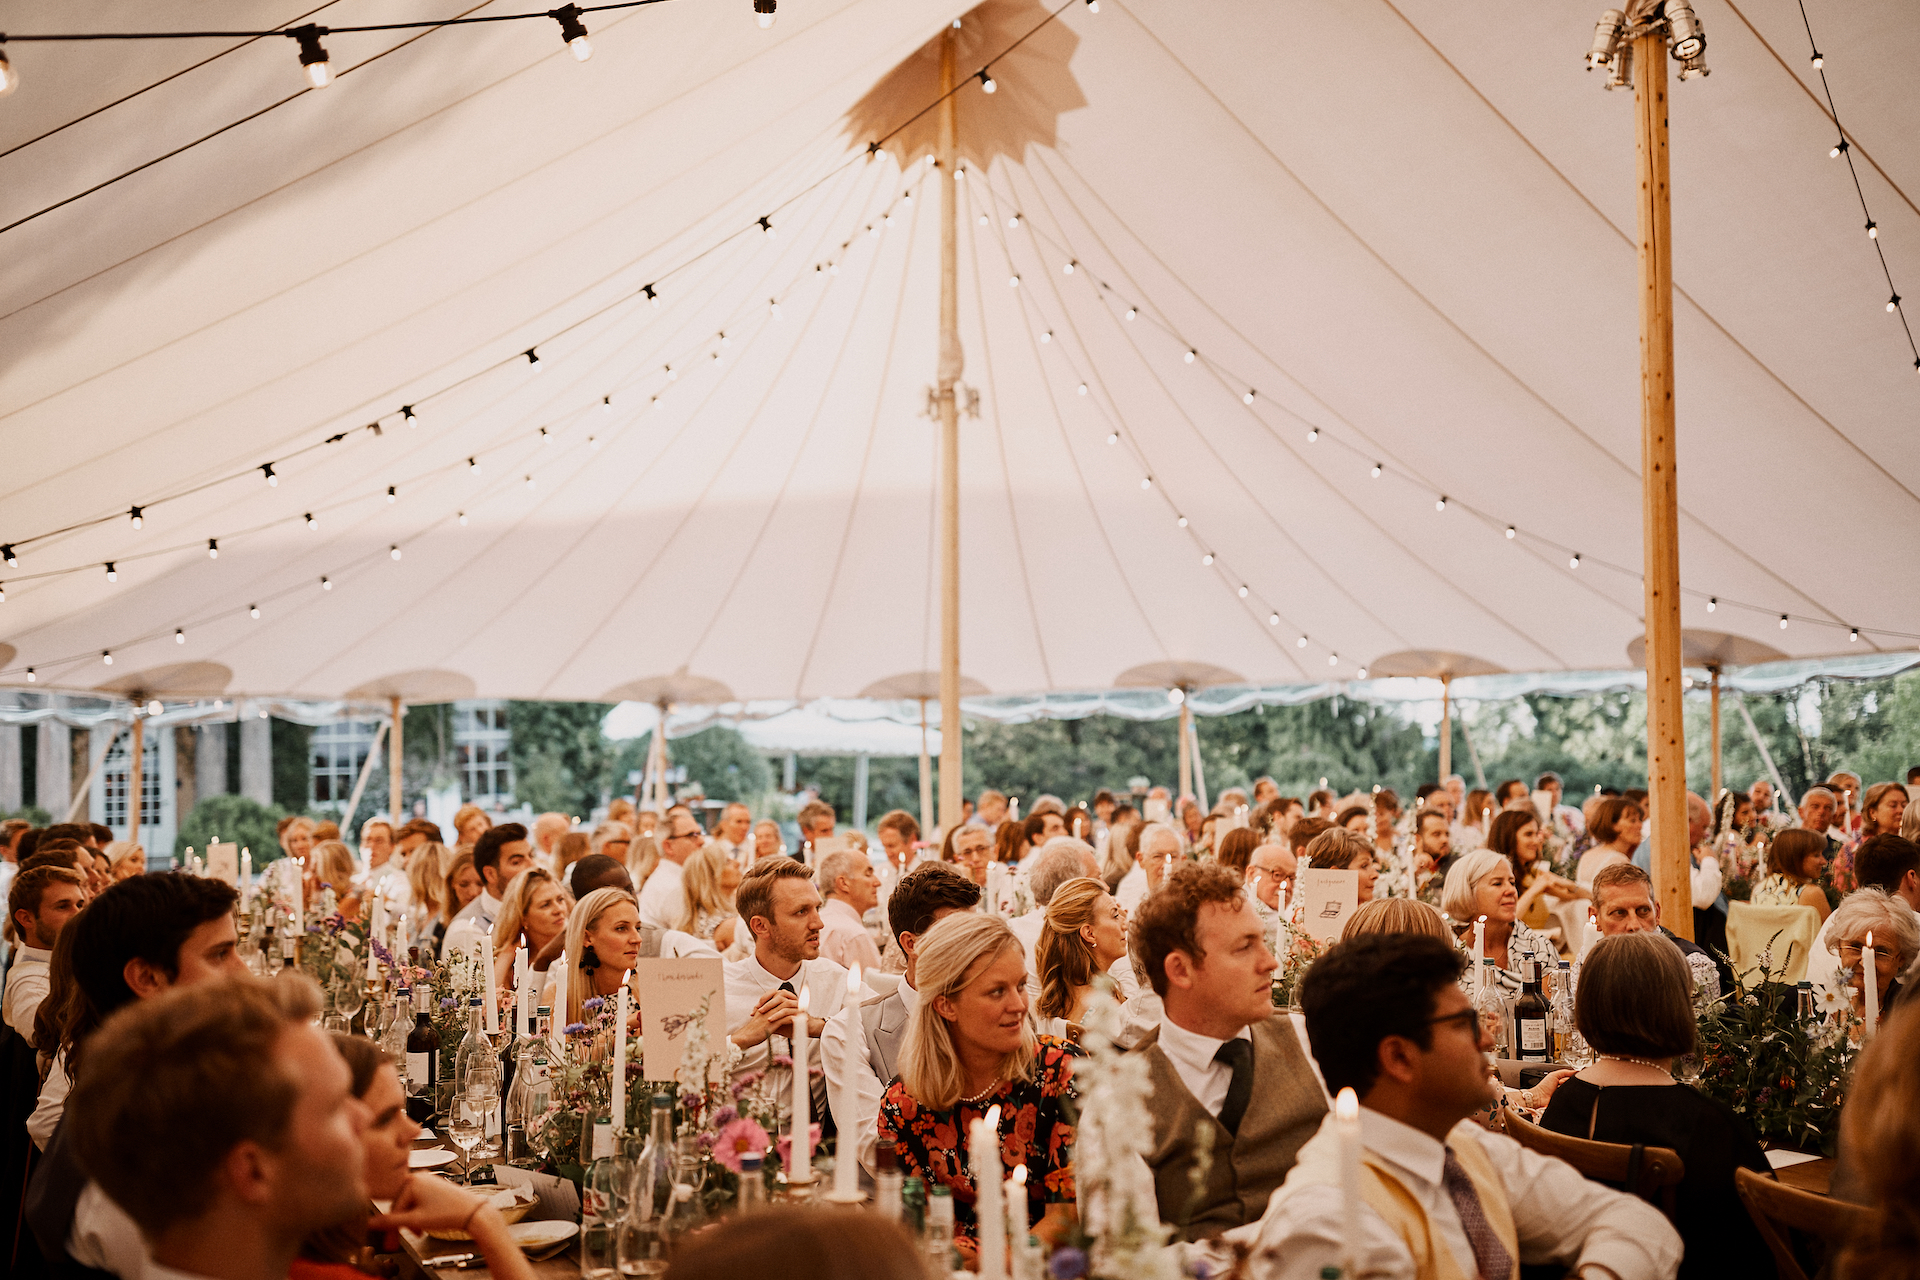 PapaKata Couple Claudia & Jimmy Sperry Tent Wedding at Norton Hall captured by Benjamin Wheeler- Sperry Tent interior